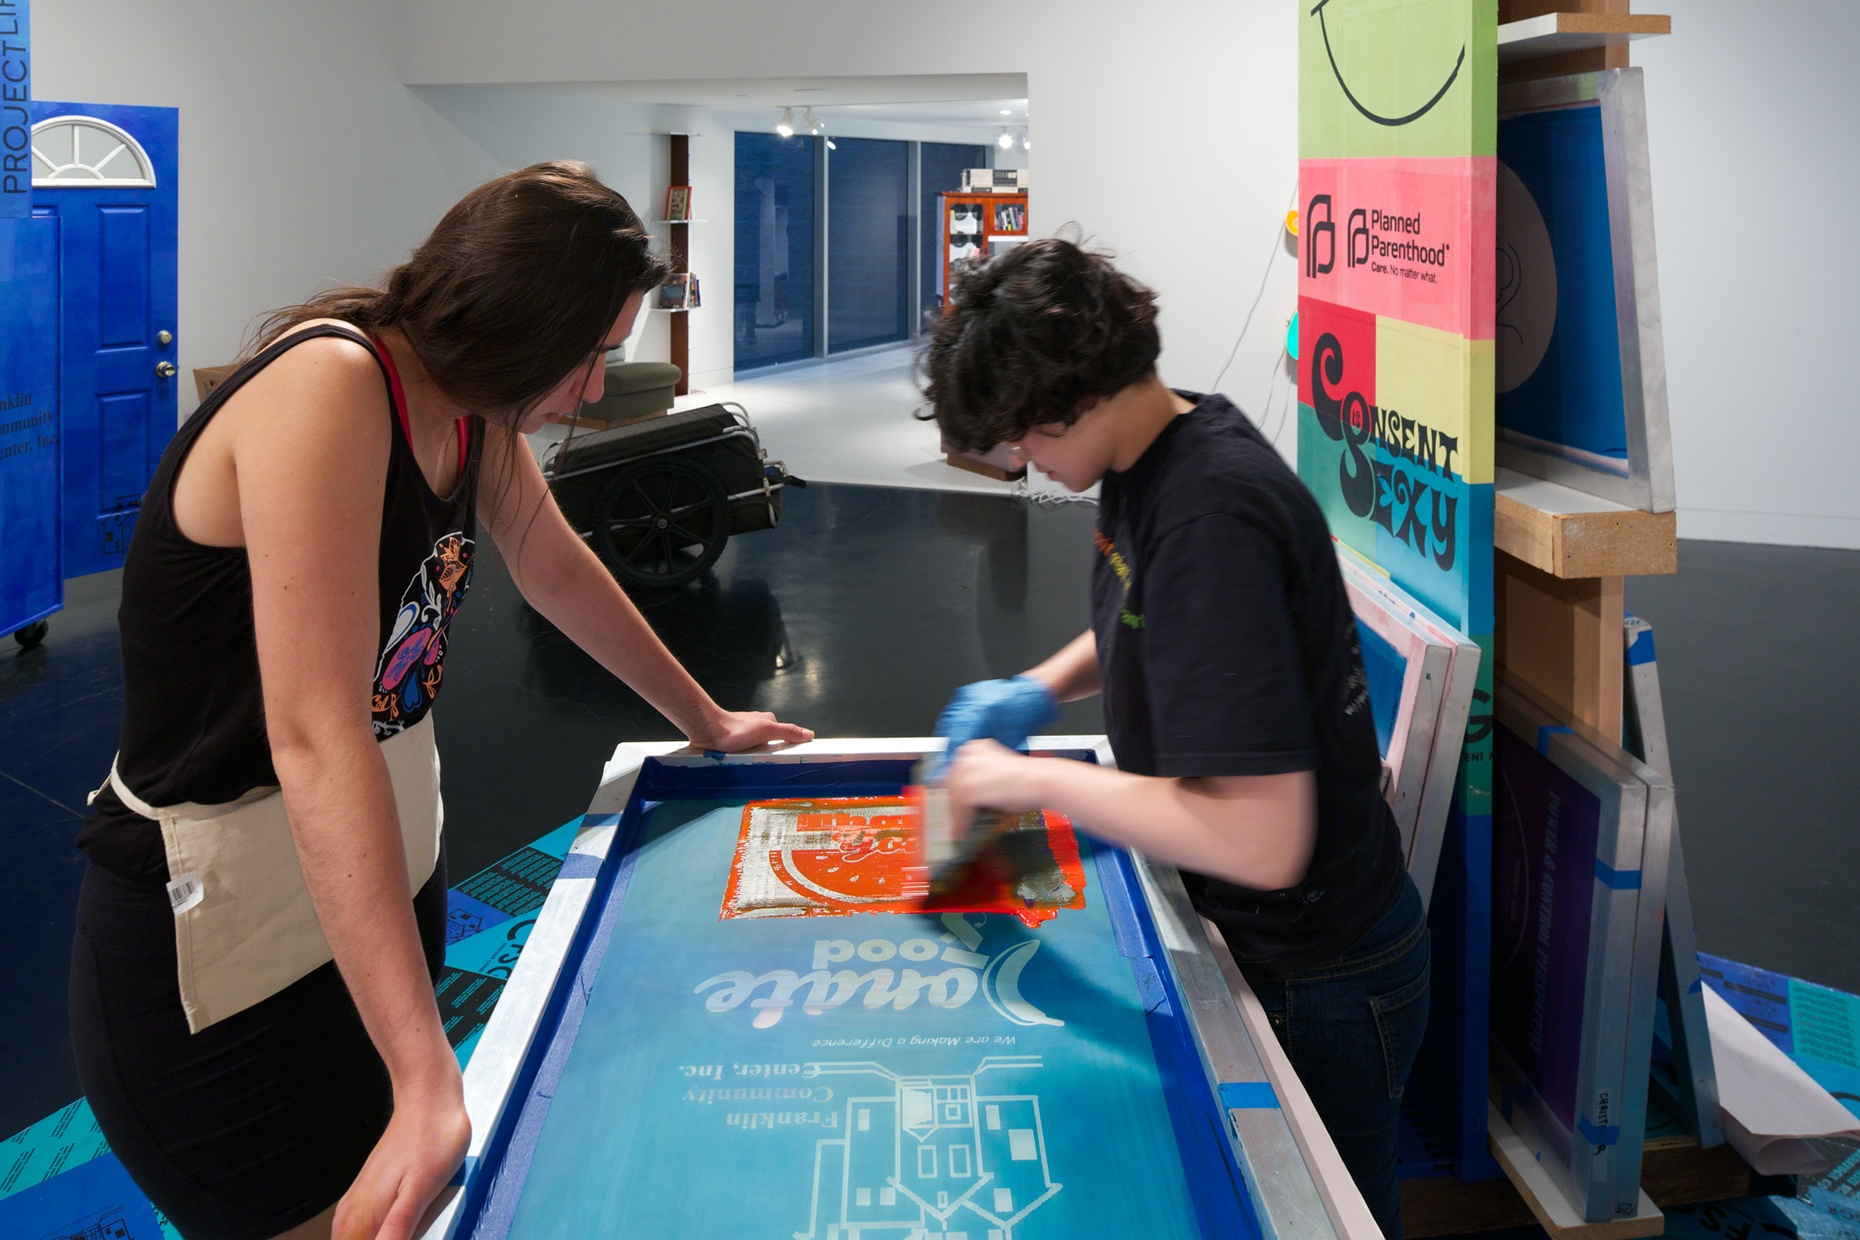 Two light-skinned, young people work on a screenprint in a gallery space.